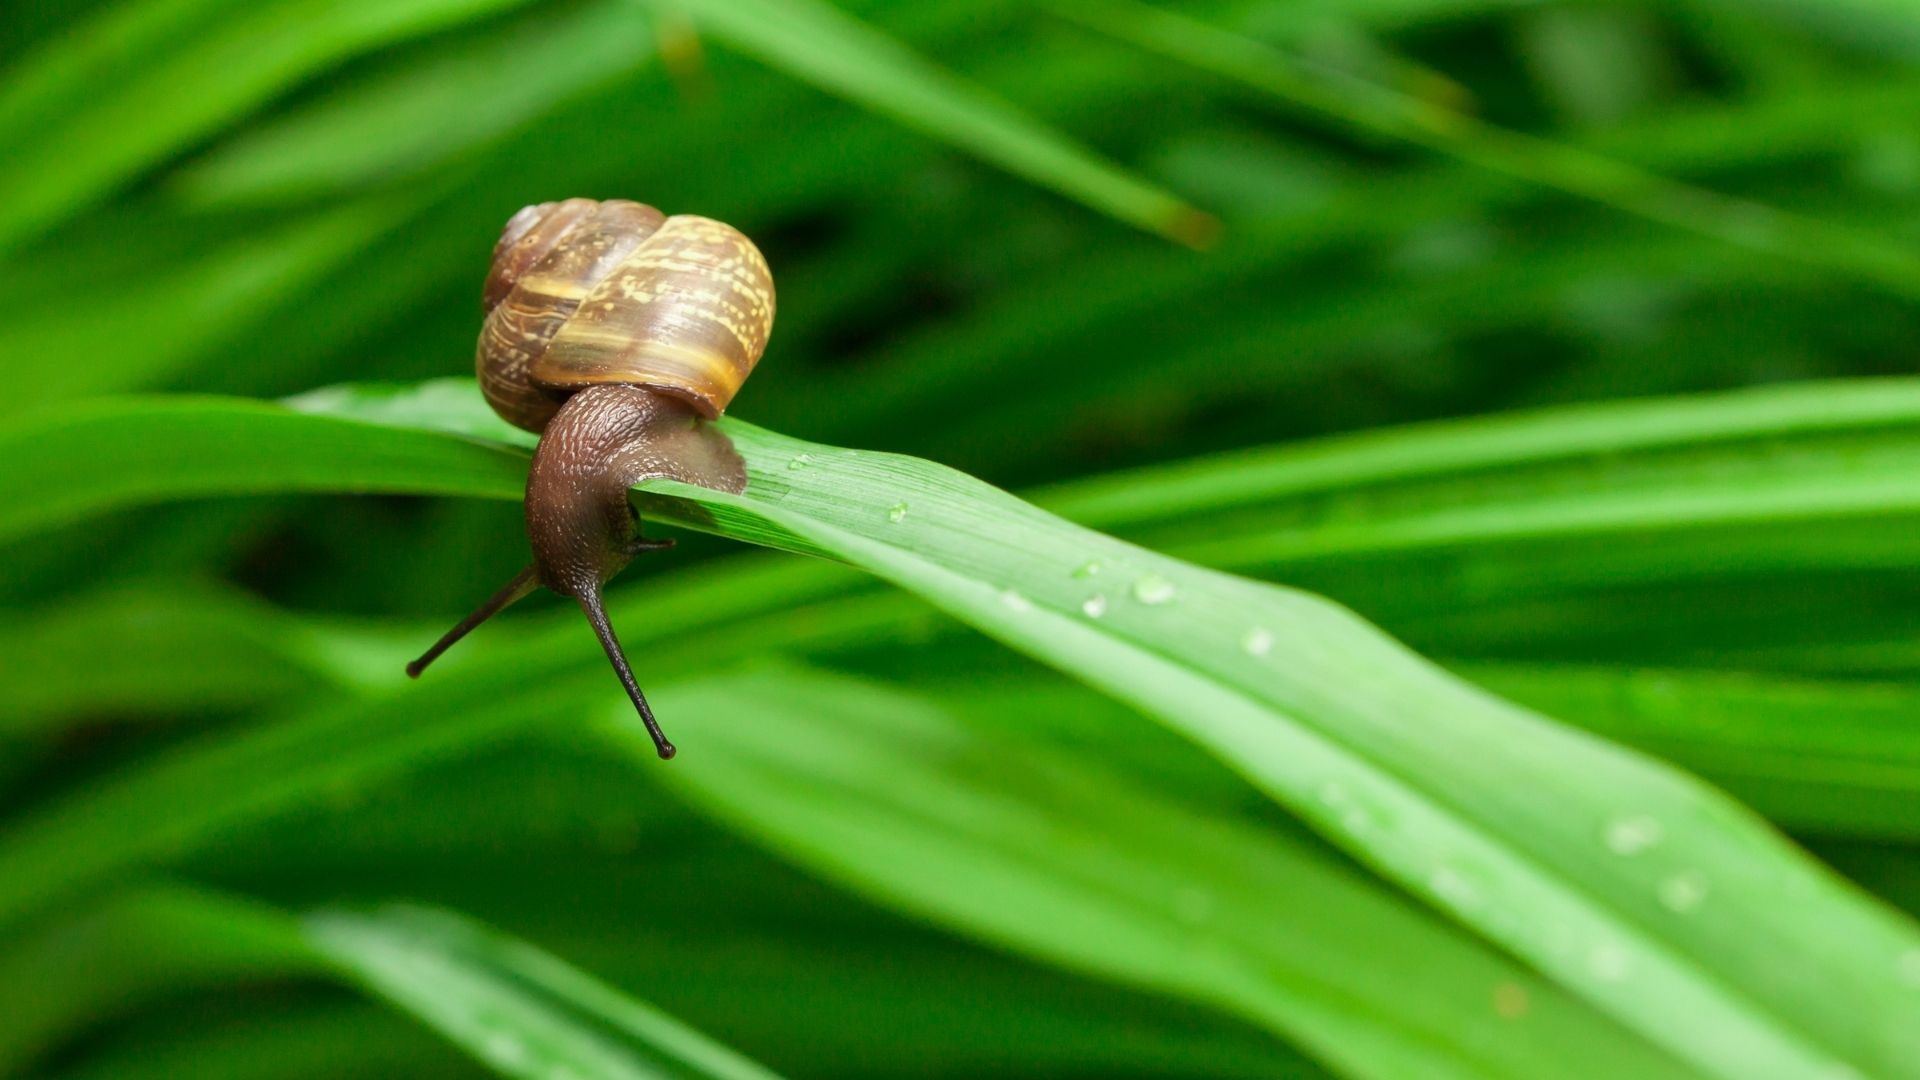 Episode 498 Poetry The Snail